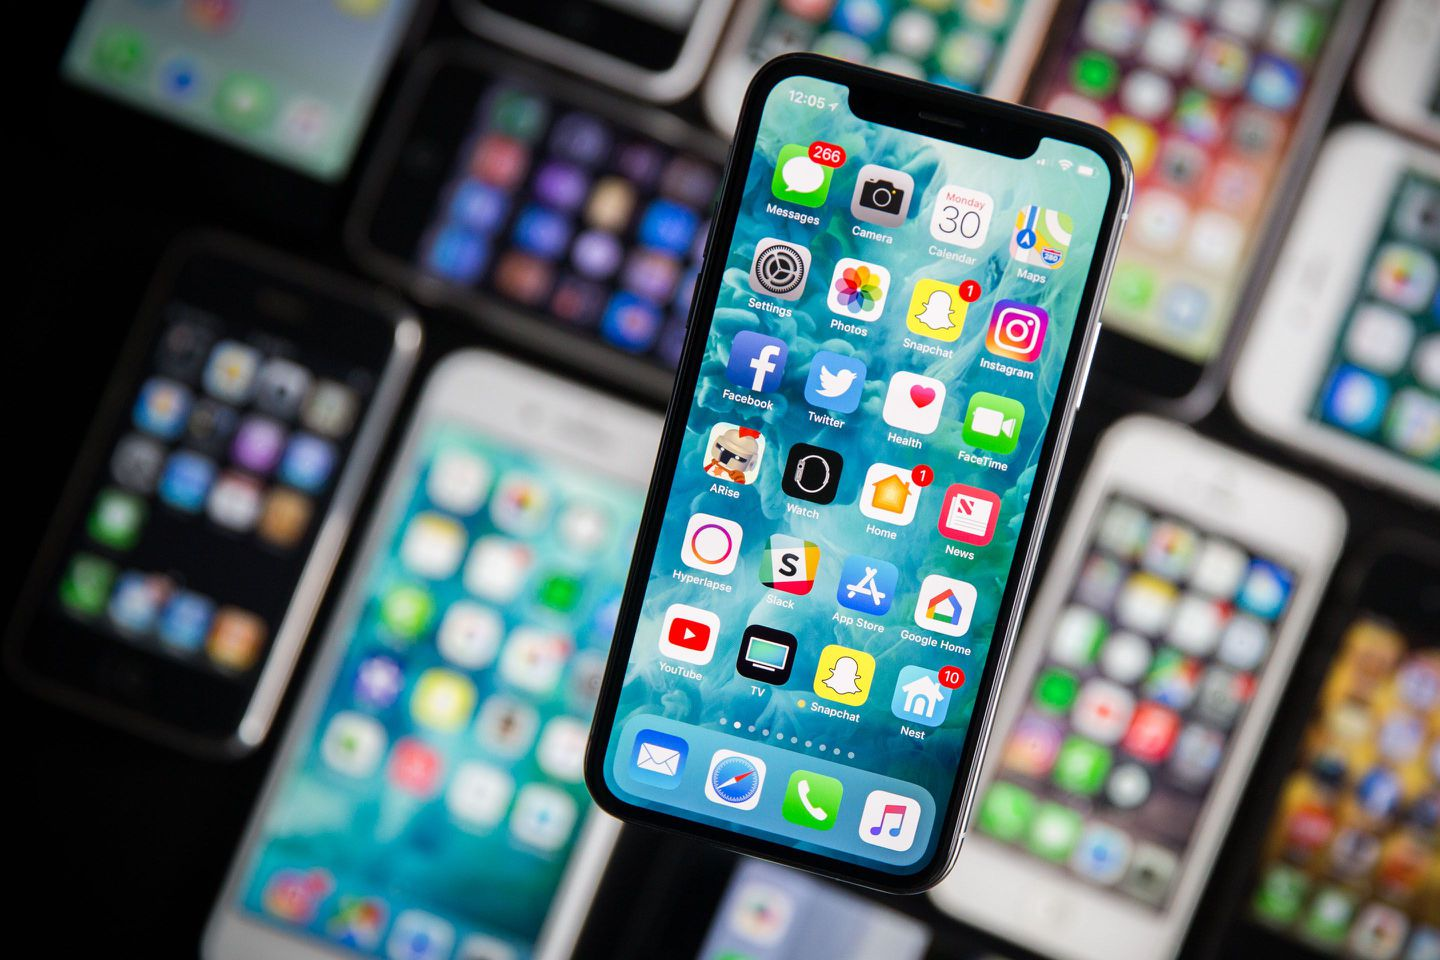 LG's struggling to meet Apple's demands for iPhone OLED screens